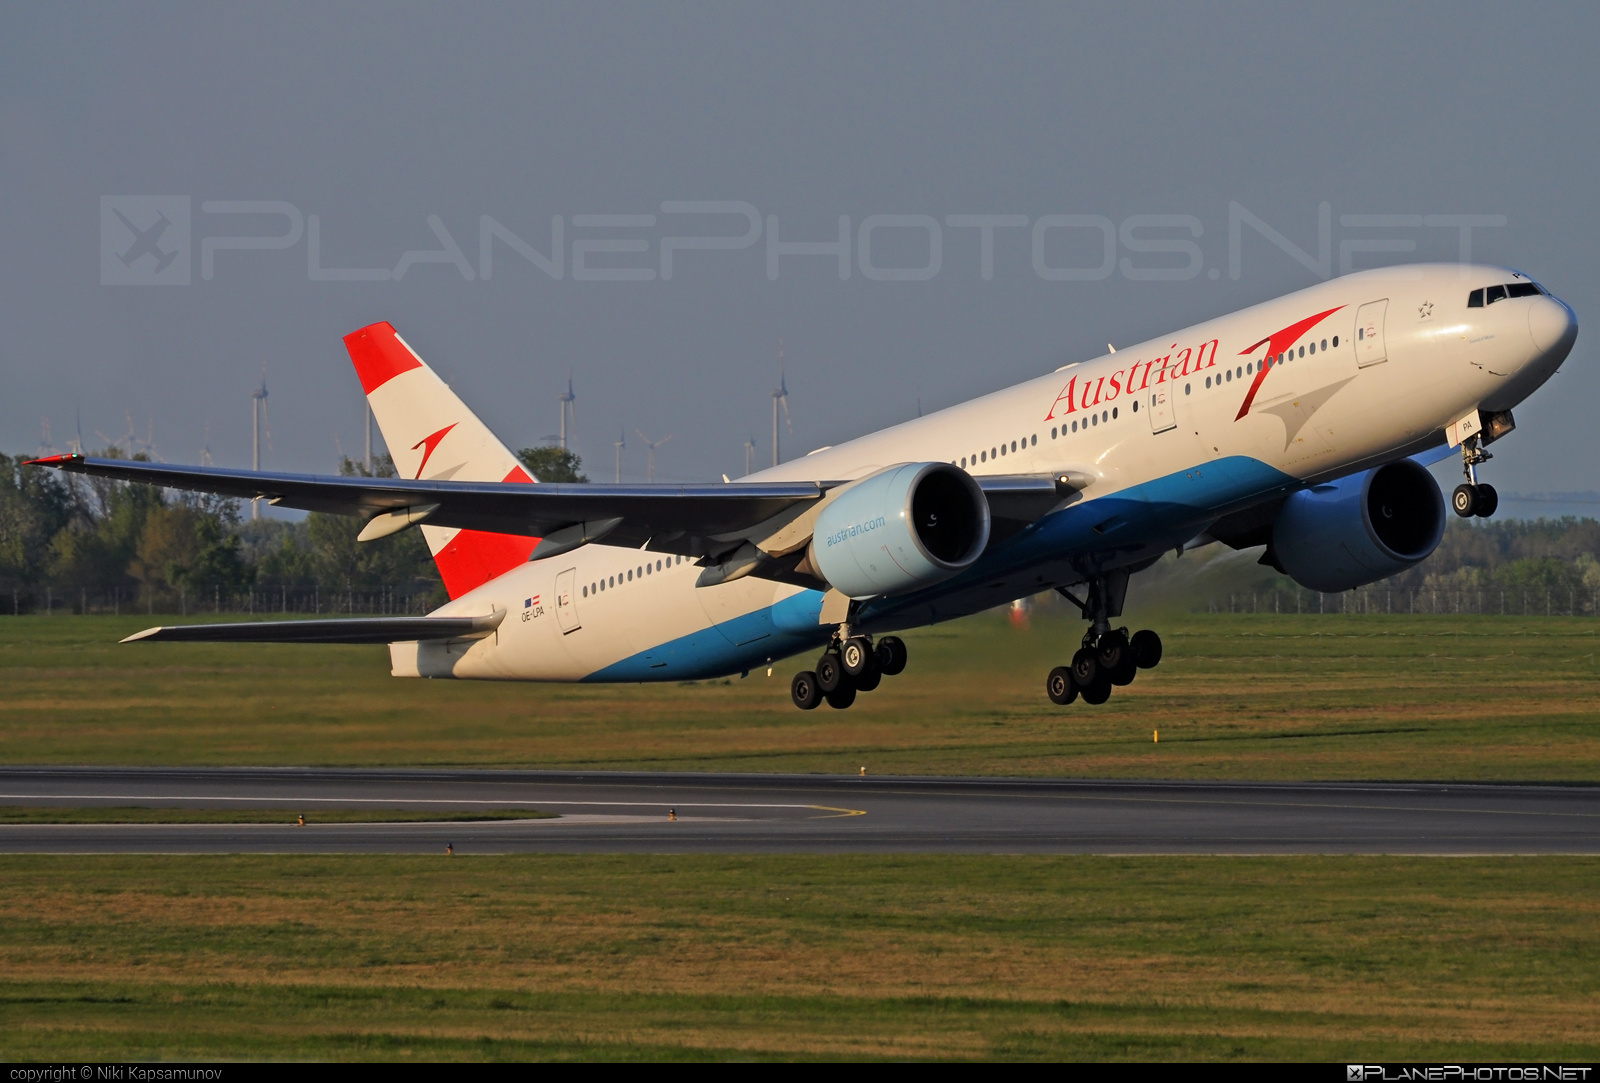 Boeing 777-200ER - OE-LPA operated by Austrian Airlines #b777 #b777er #boeing #boeing777 #tripleseven